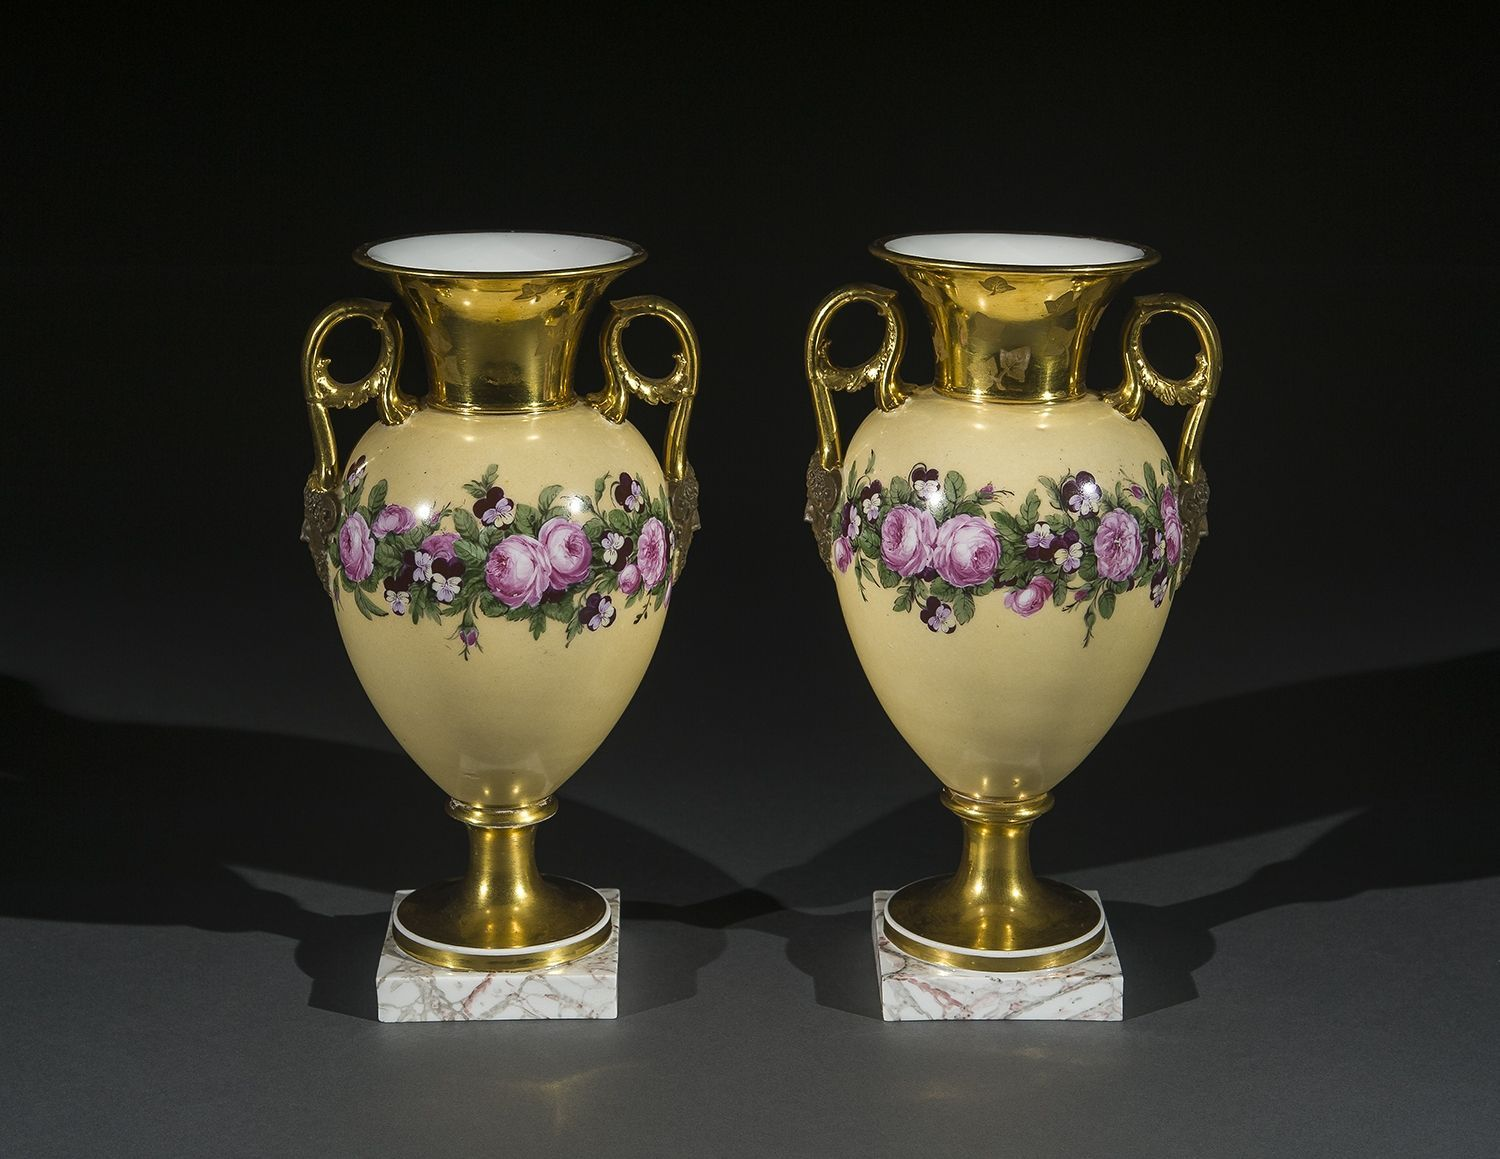 """Pair """"Old Paris"""" Porcelain Vases with Yellow Ground and Garlands of Flowers,about 1816–20Dagoty & Honoré, ParisPorcelain, painted and gilded, with iron tie-rods (for assembly)11 3/8 in. high"""